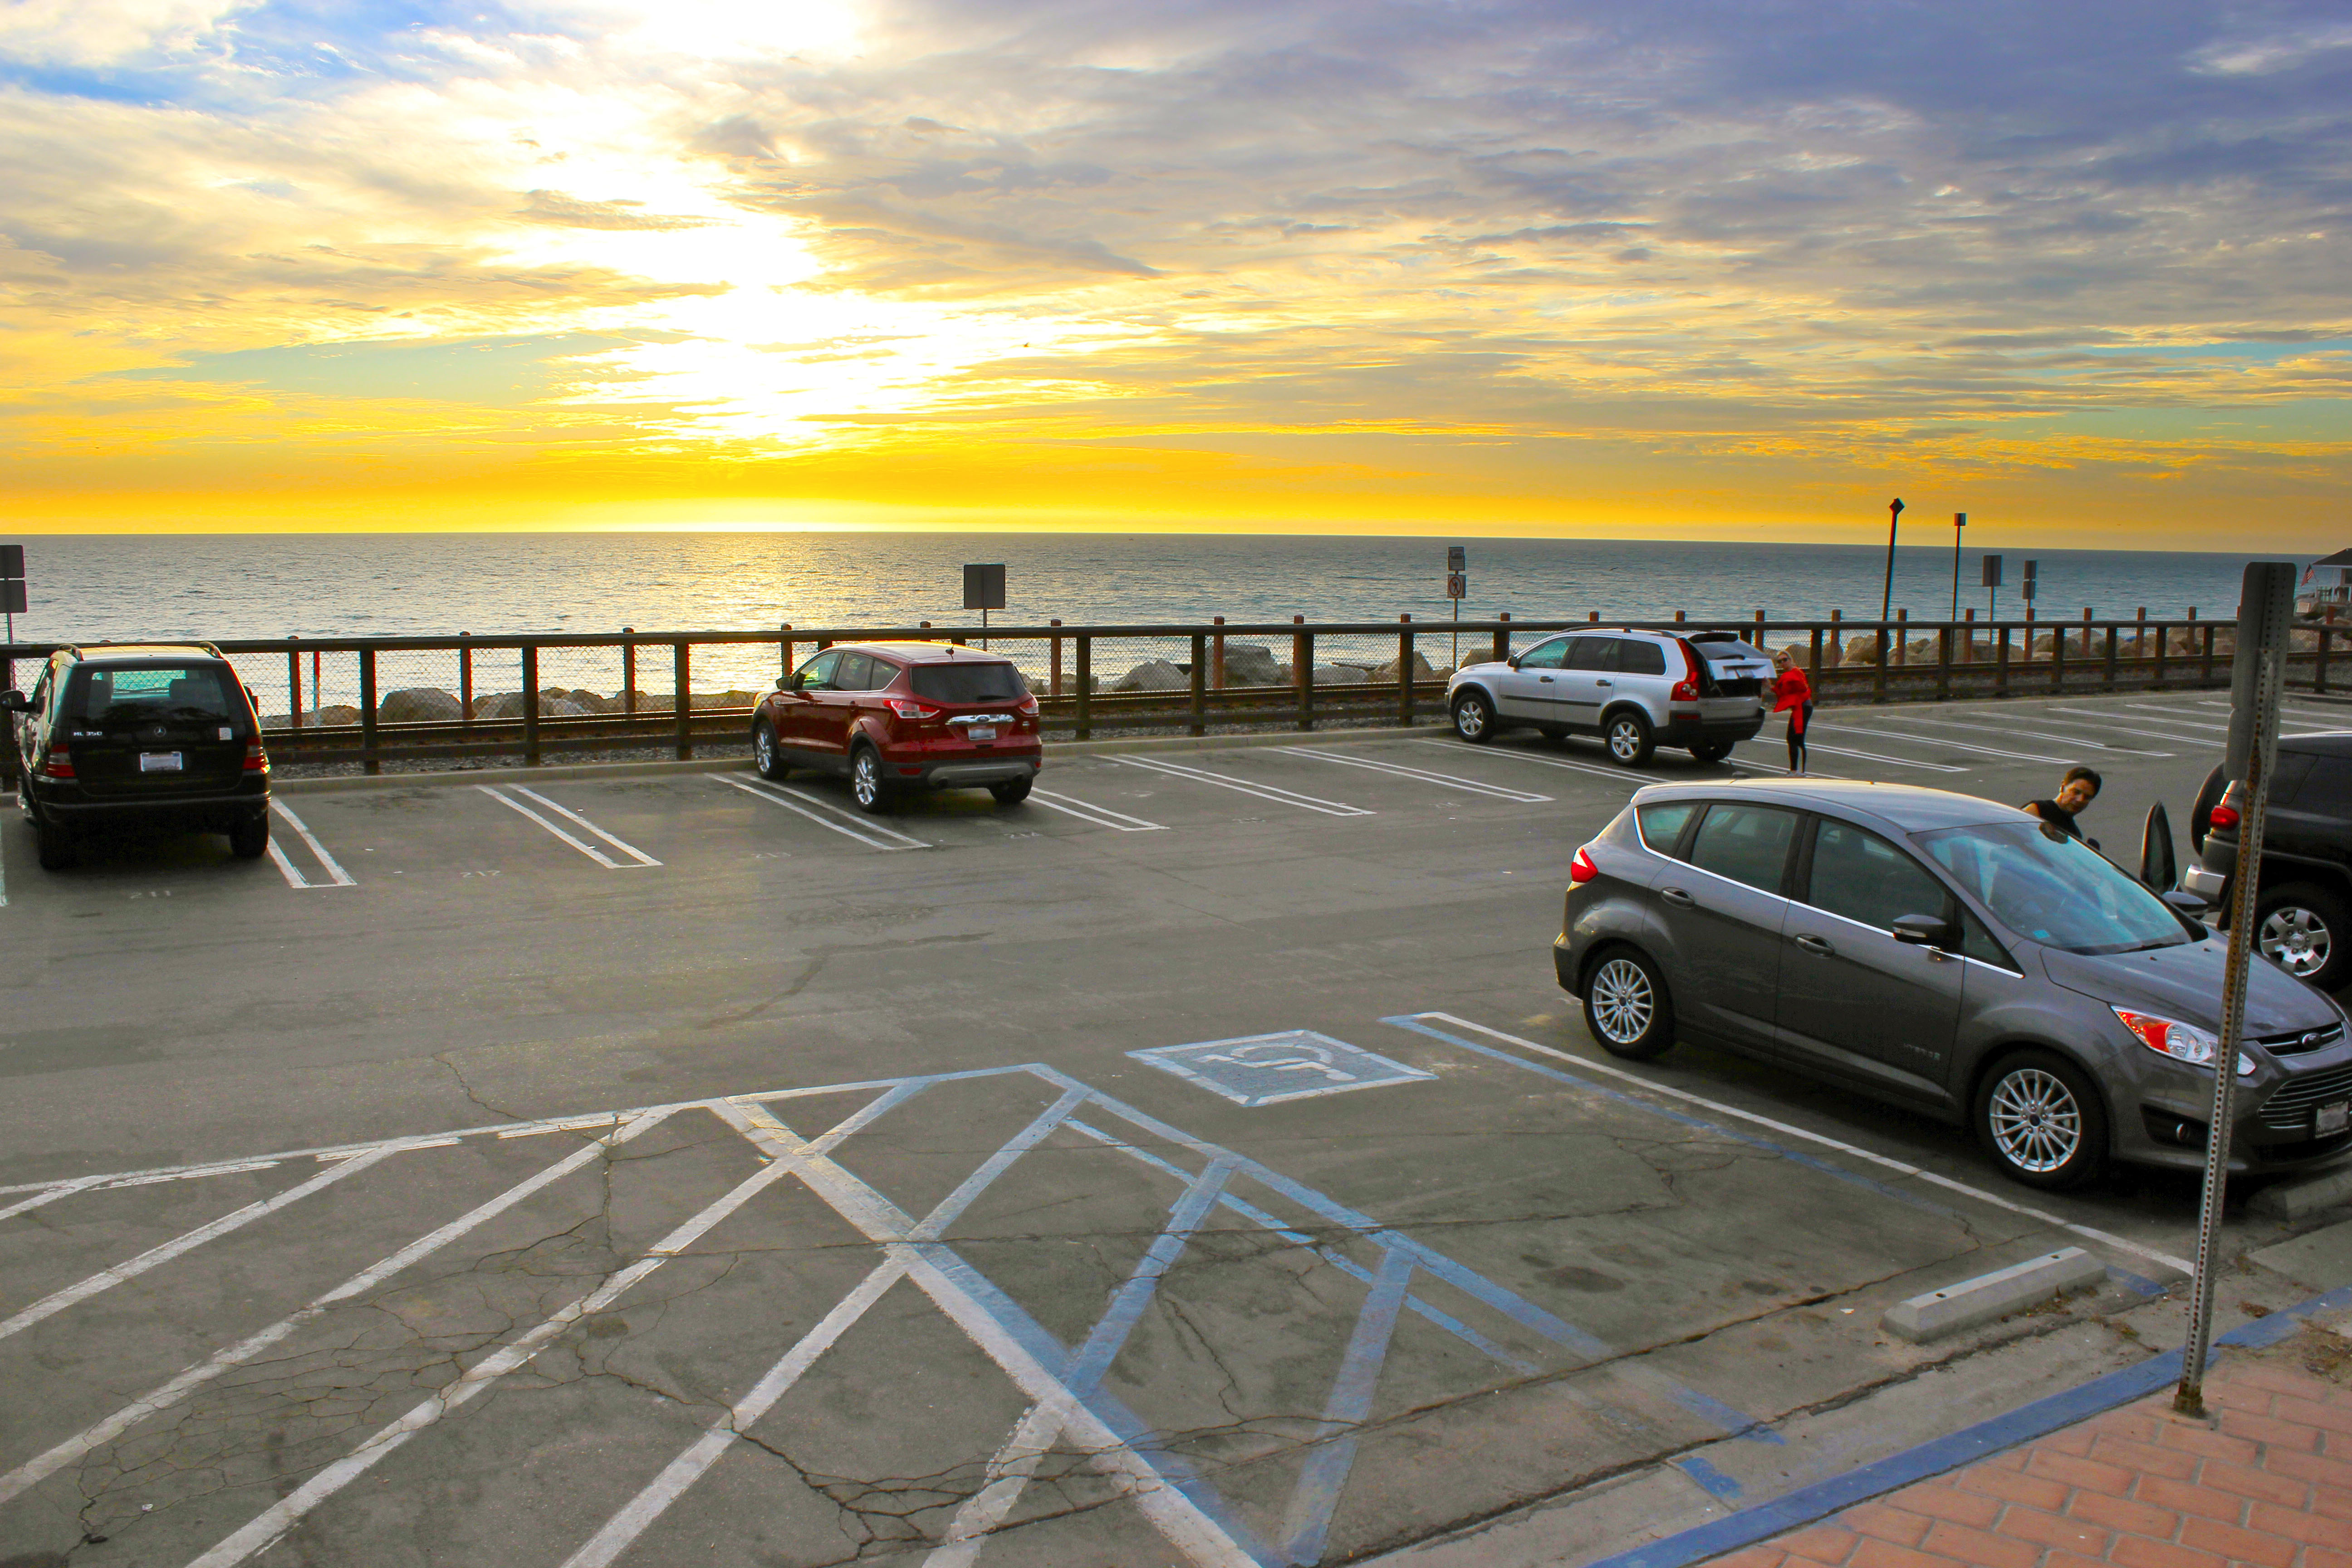 The city has lost a lawsuit over its fund to build beach parking to reflect the city's population growth. The ruling may mean a refund of more than $10.5 million to residents who built homes in the city's non-coastal zone. Photo by Brian Park